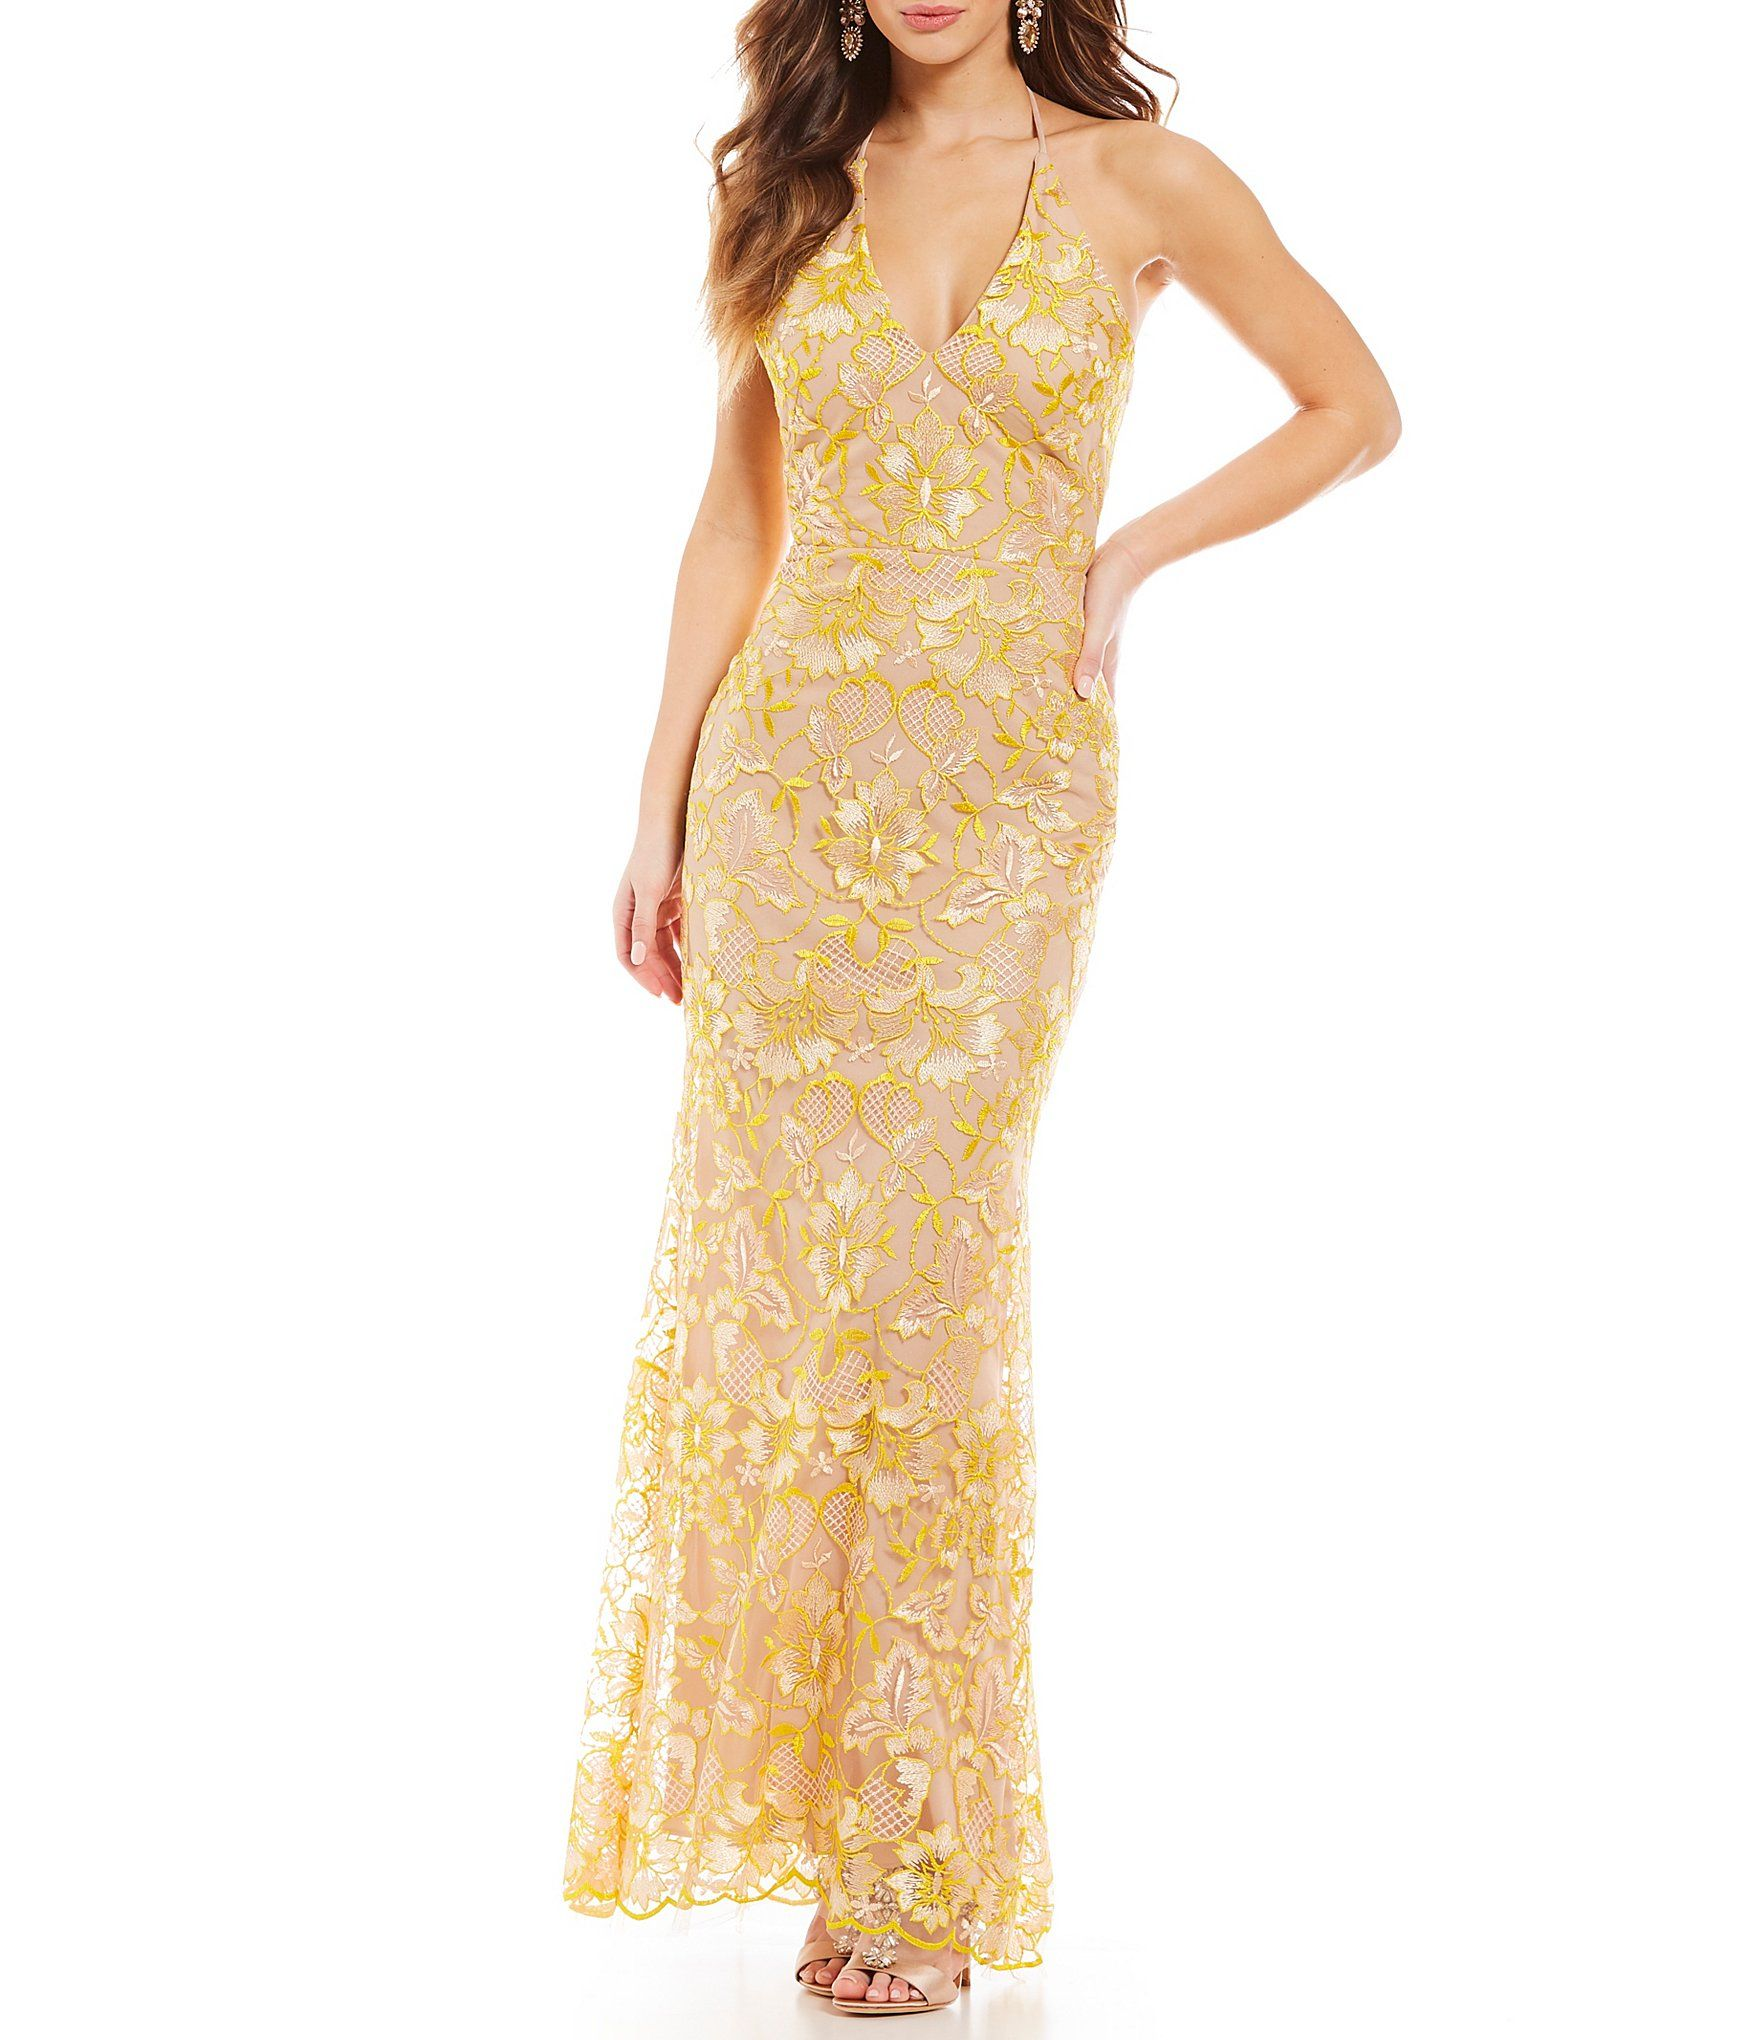 Shop for GB Social Halter Neck Floral Lace Gown at Dillards.com. Visit  Dillards.com to find clothing 0bb0a0778